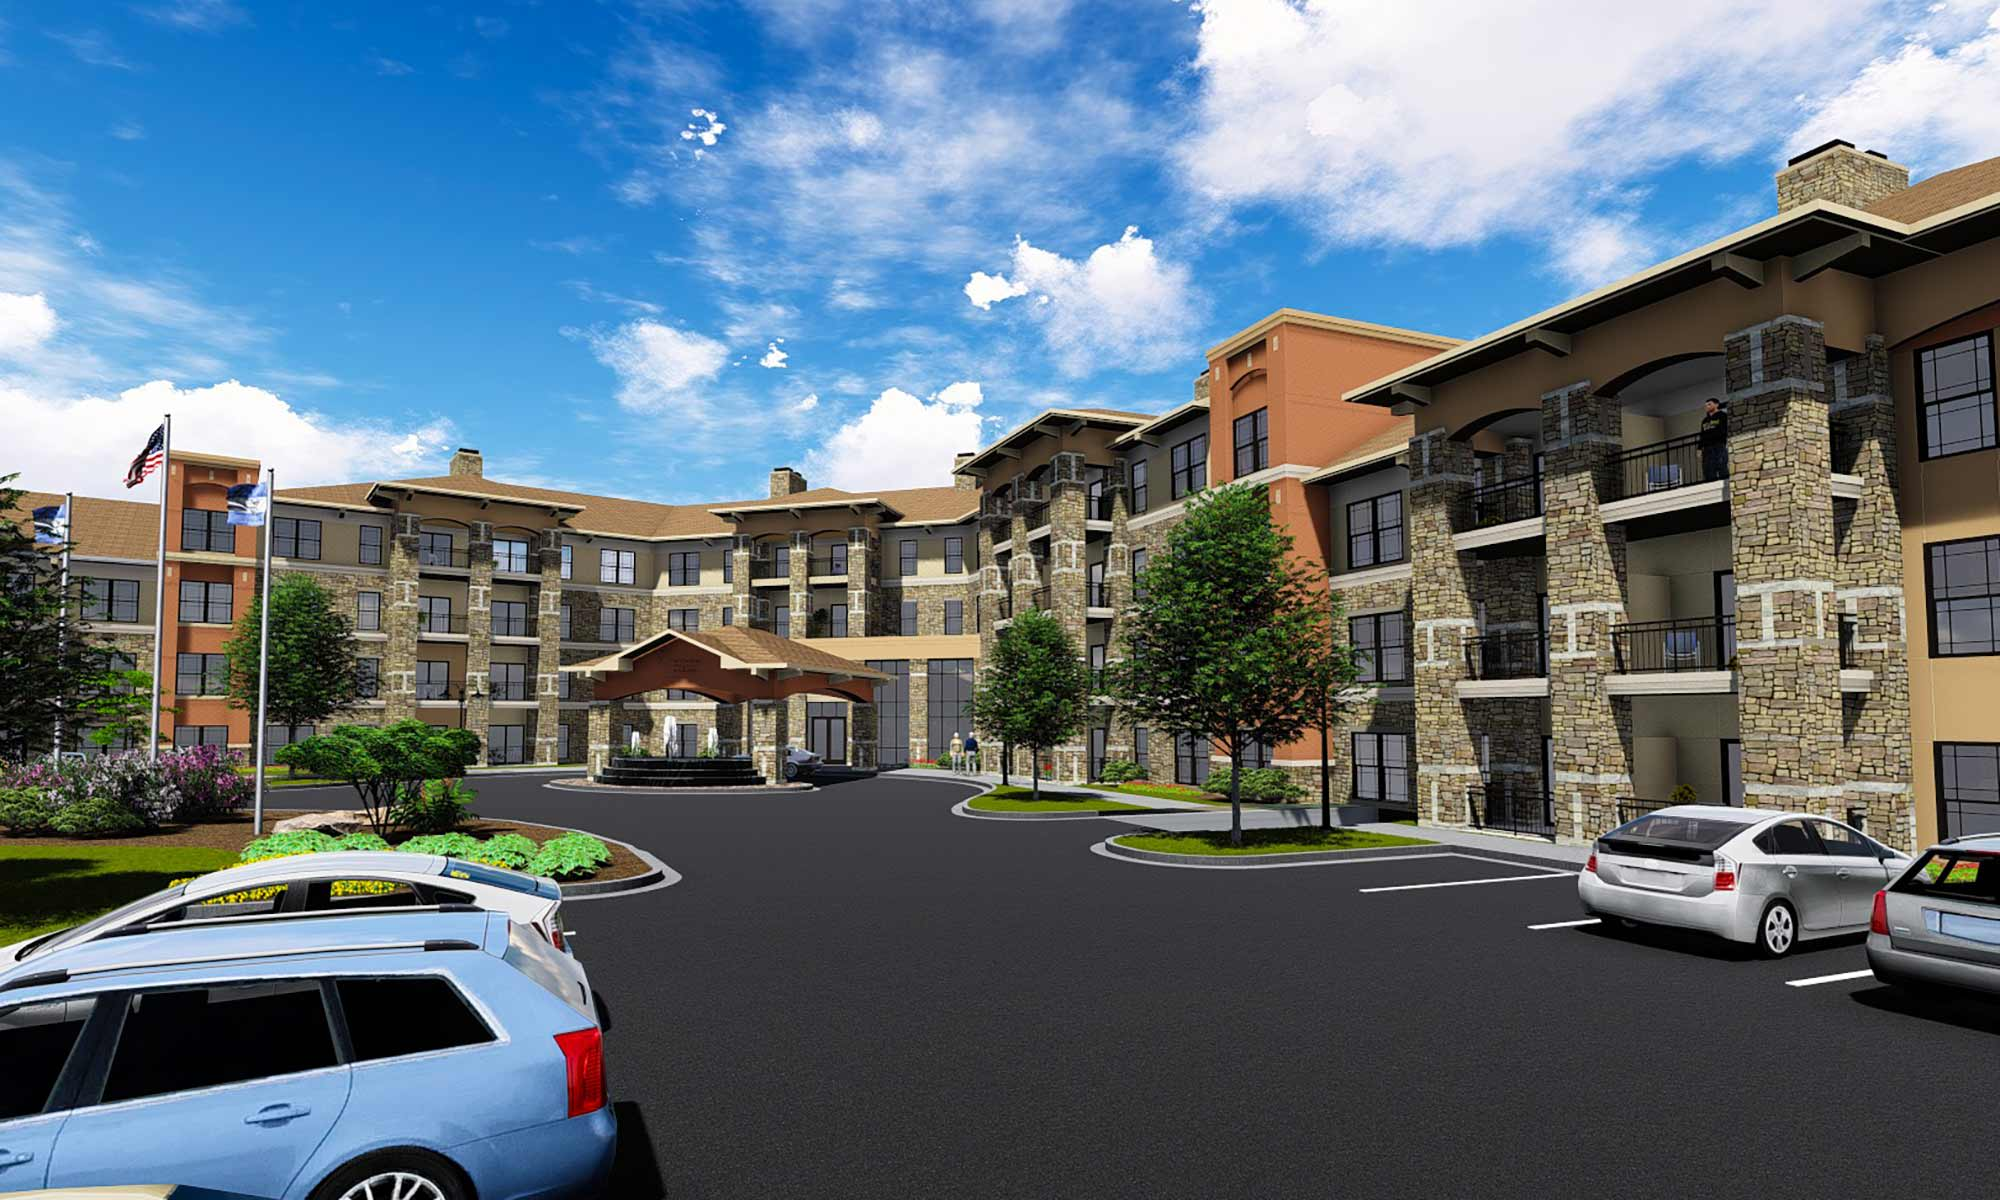 Exterior view of our luxury senior living community at The Fairways of Ironhorse in Leawood